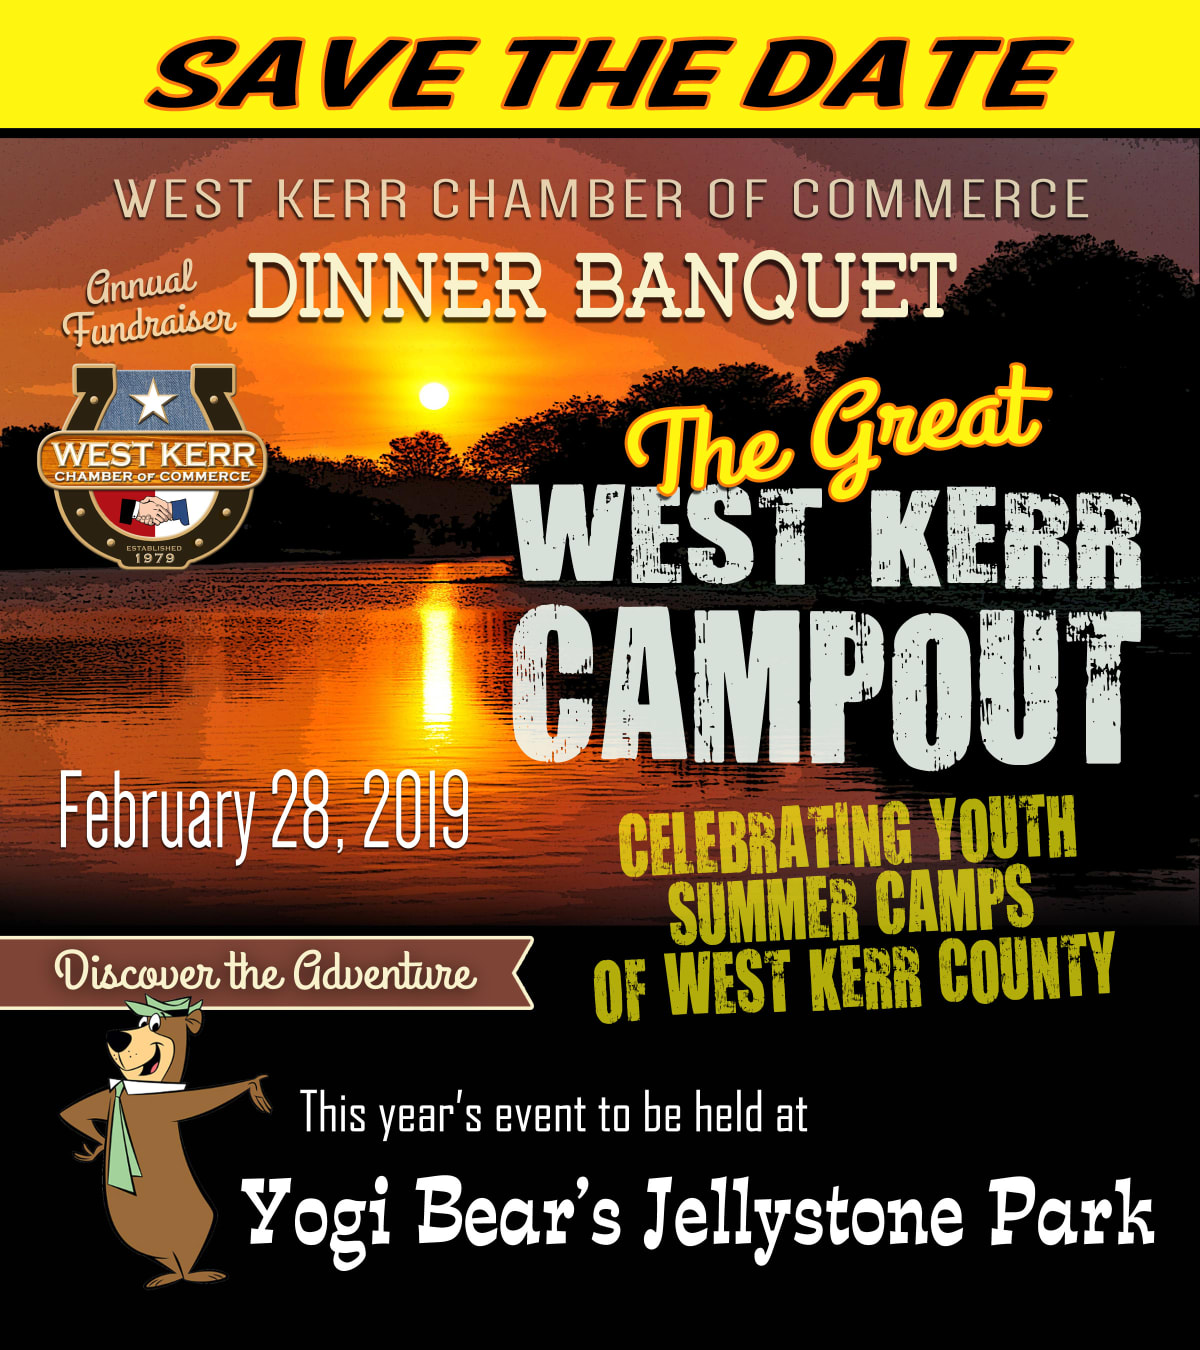 Save-the-Date-for-West-Kerr-Campout-Banquet-(002)-w1200.jpg